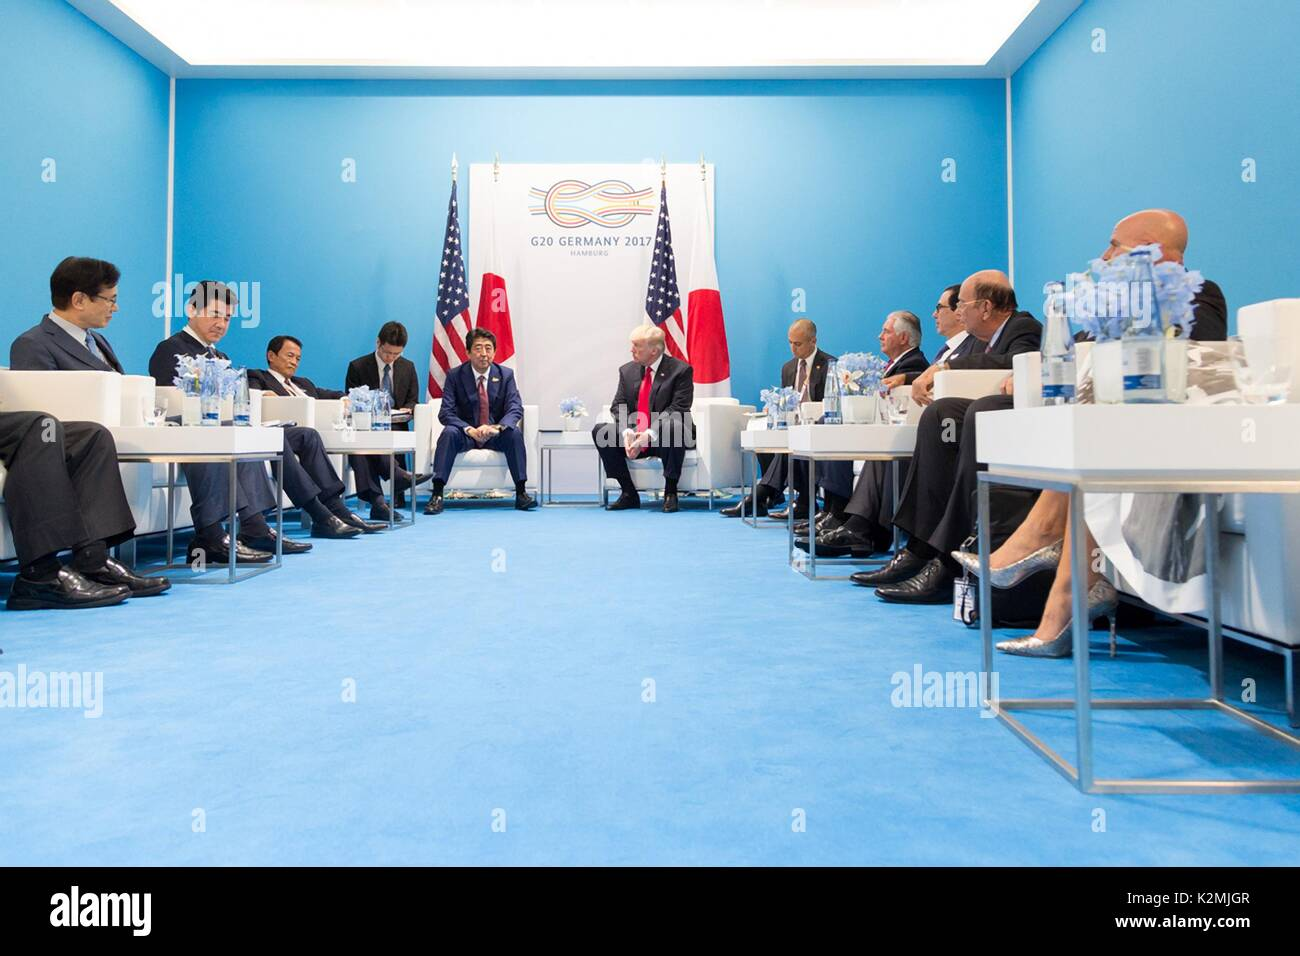 U.S. President Donald Trump and Japanese Prime Minister Shinzo Abe before the start of their bilateral meeting on the sidelines of the G20 Summit July 8, 2017 in Hamburg, Germany. - Stock Image